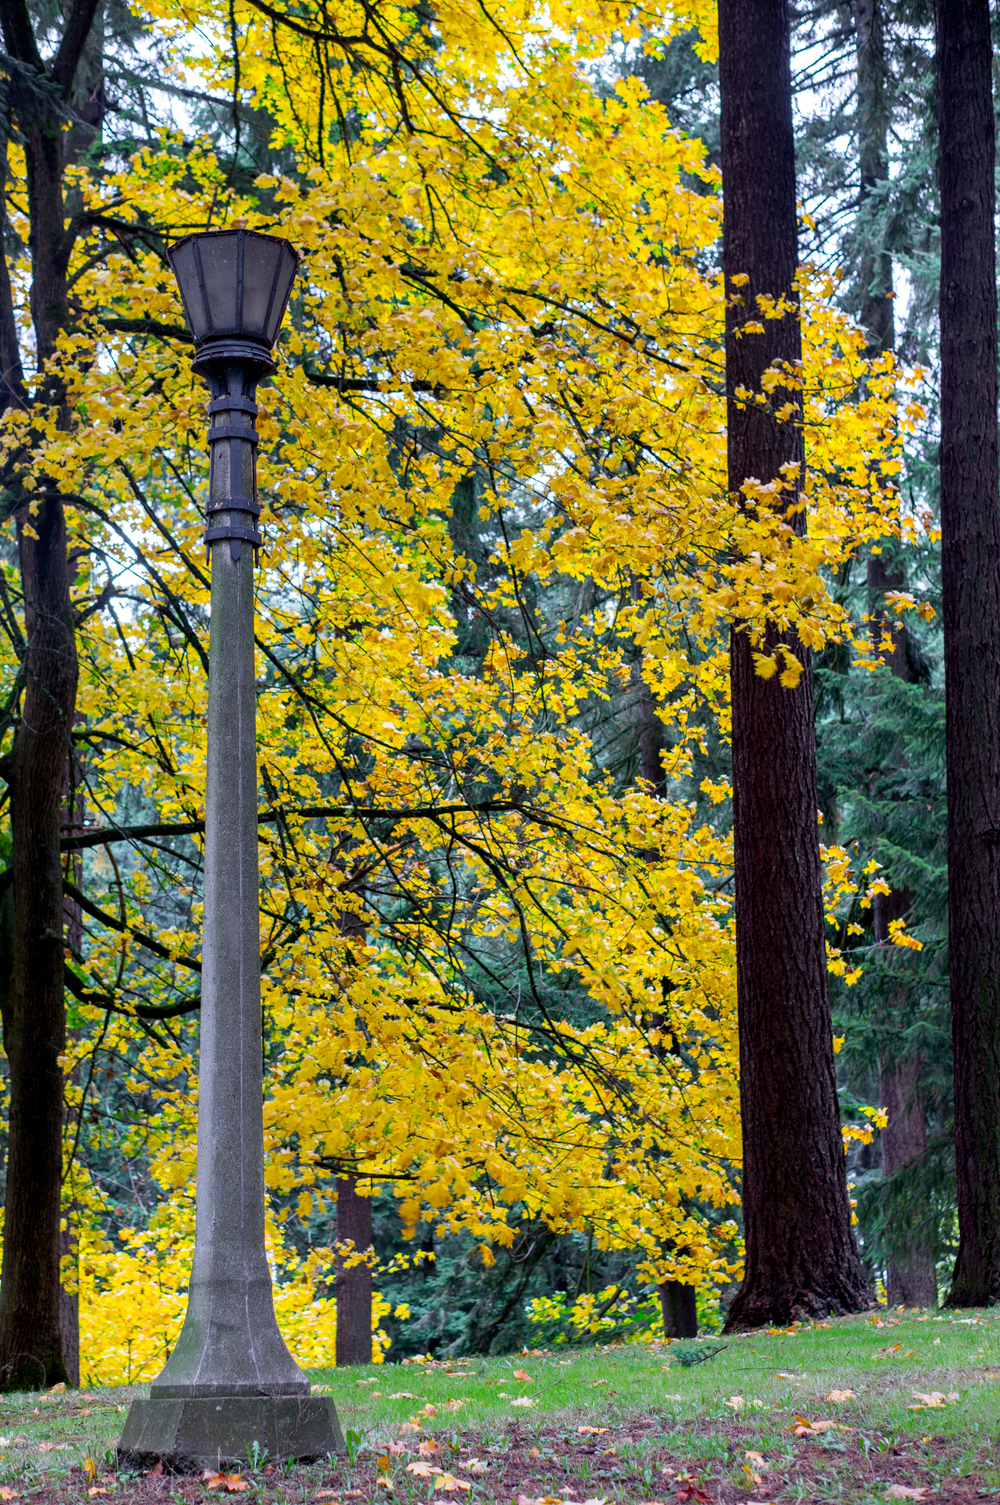 Lamp Post | 365 Project | Nov 4th, 2012